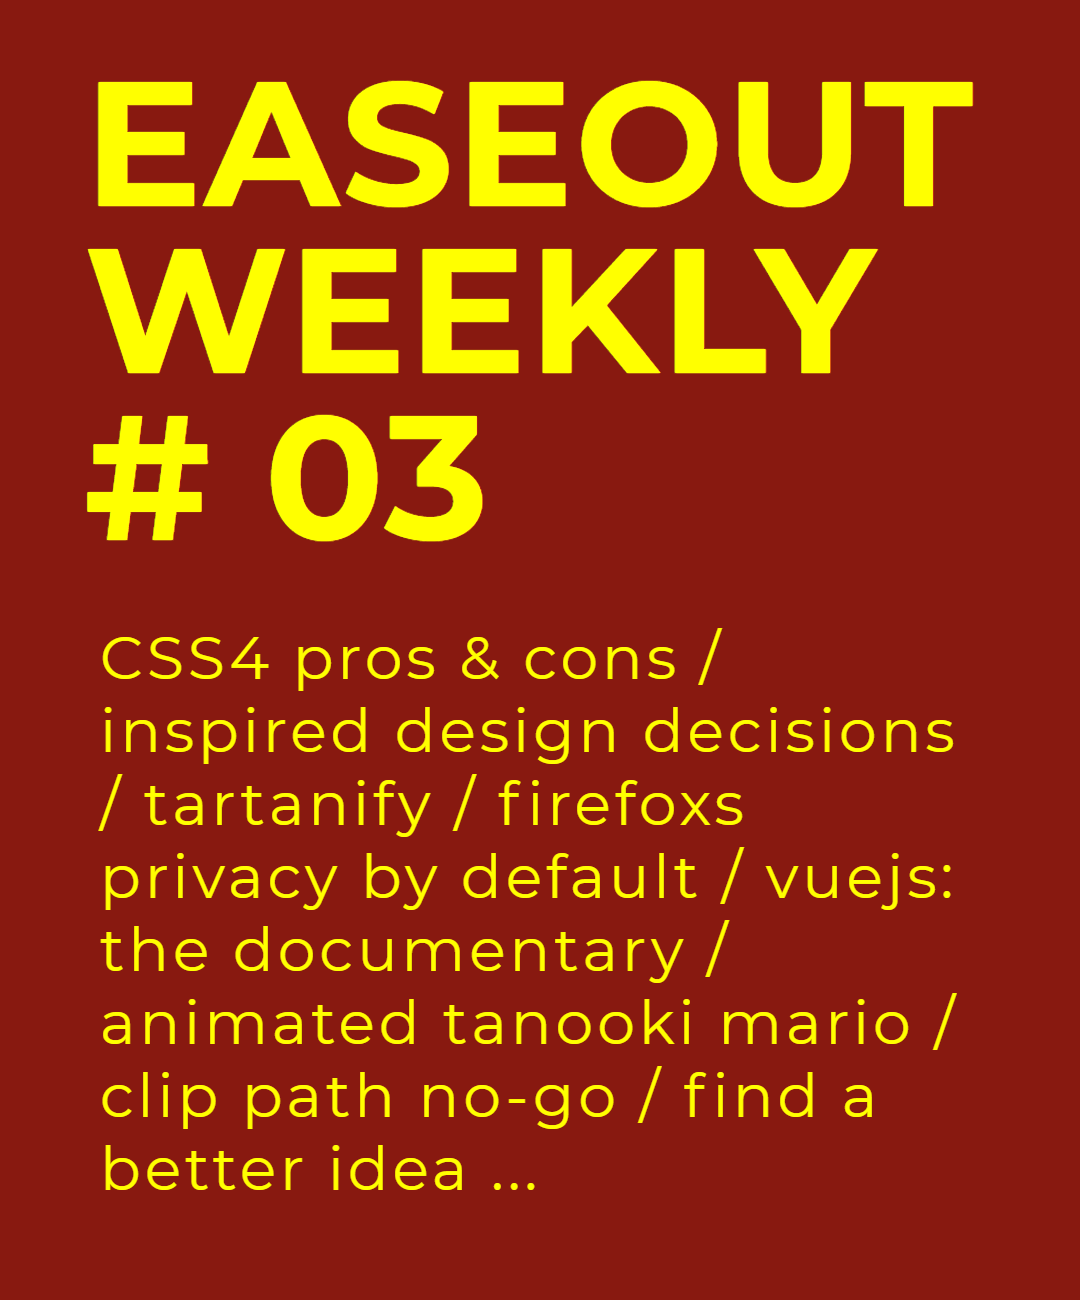 Easeout Weekly #3